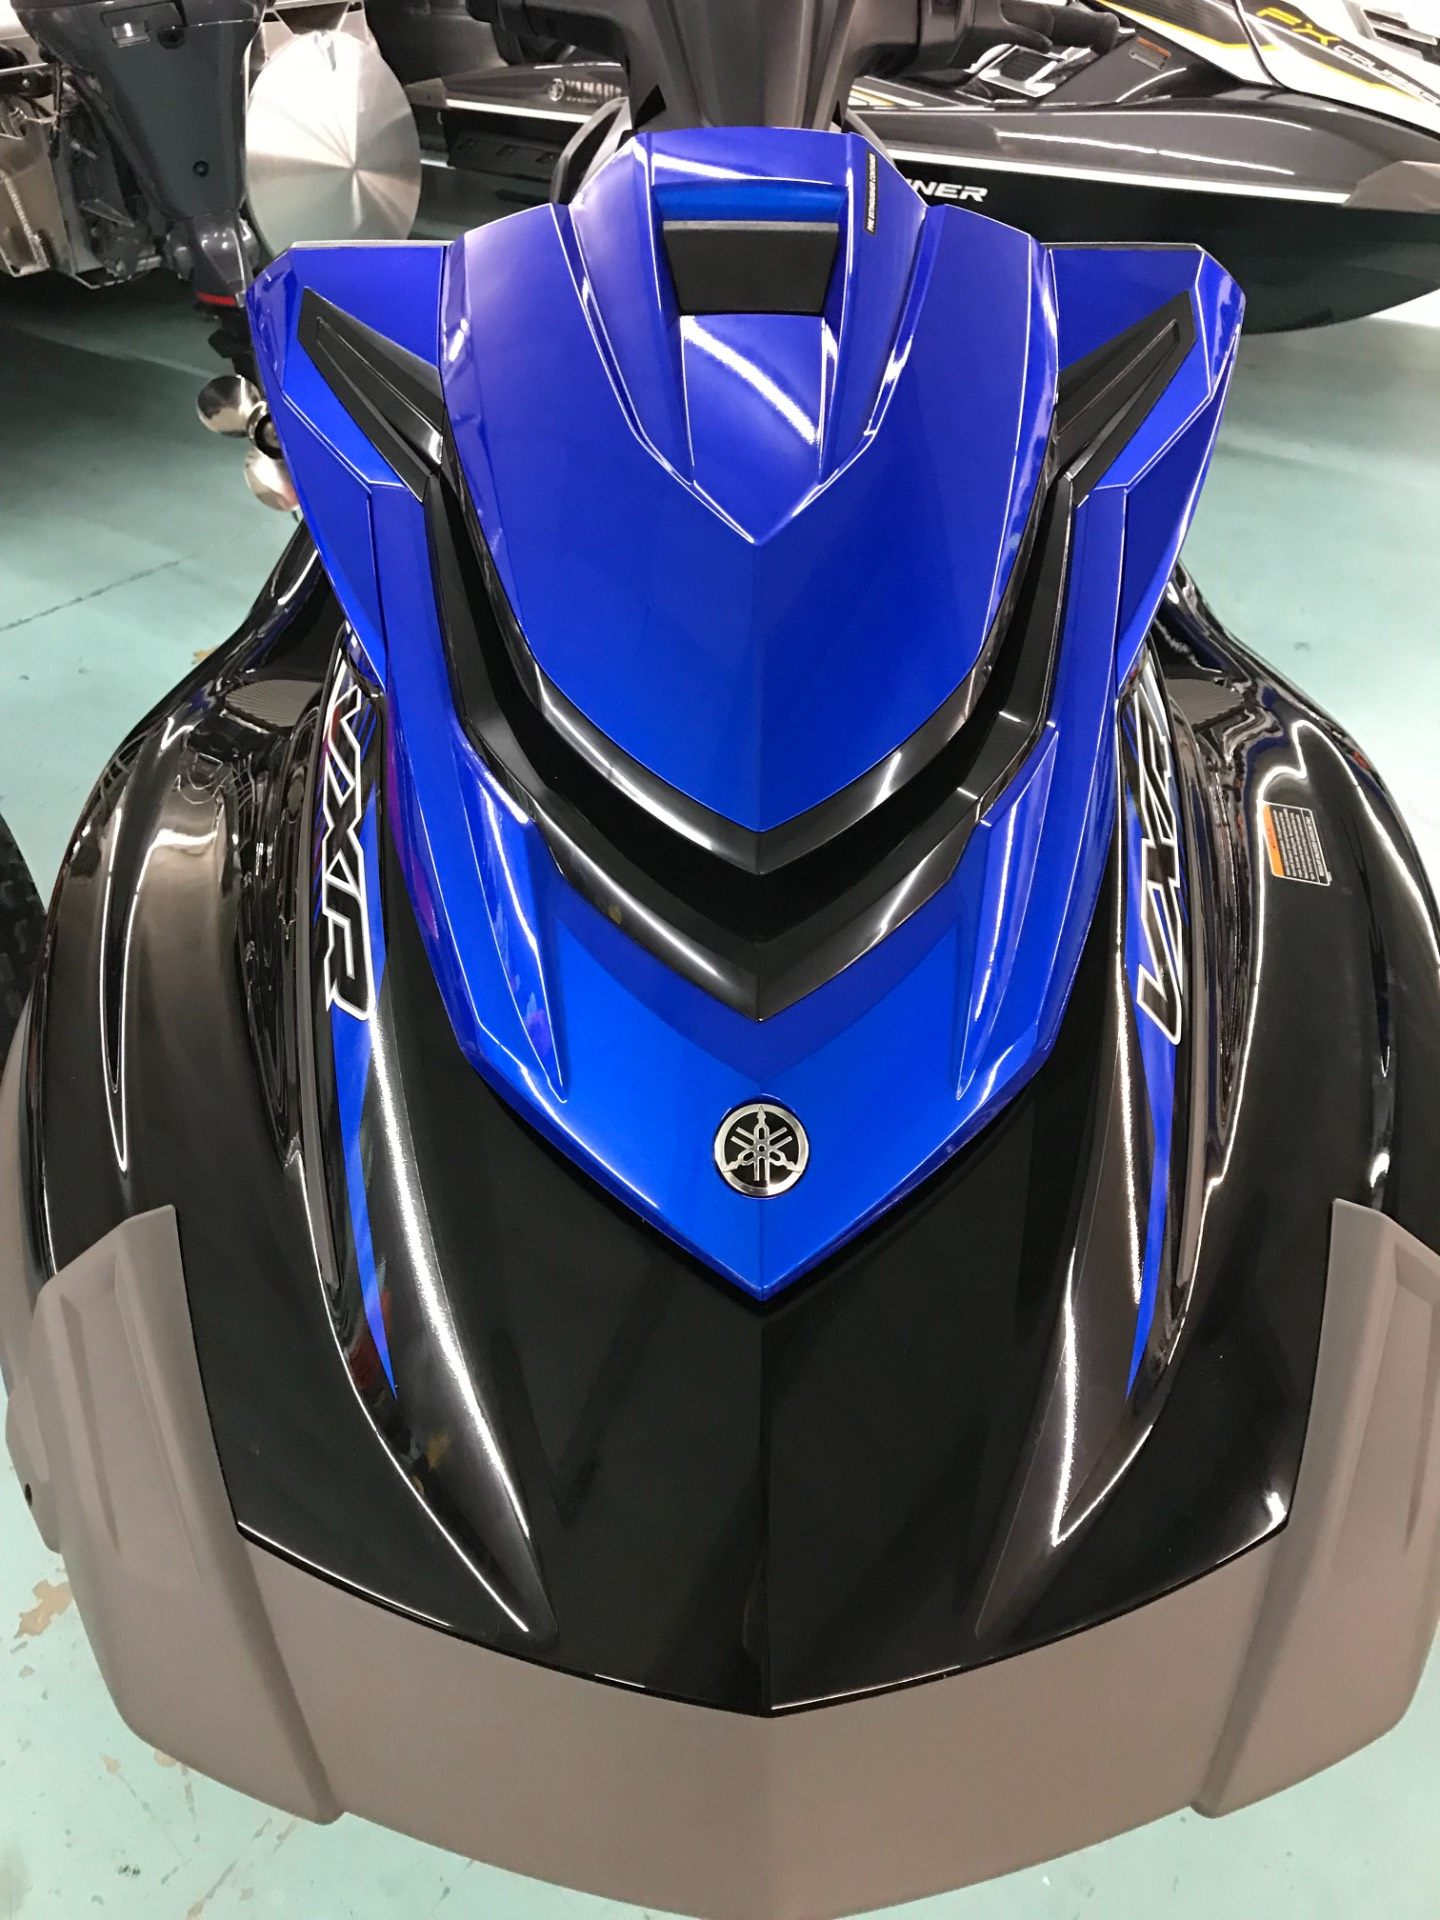 2018 Yamaha VXR for sale 83868